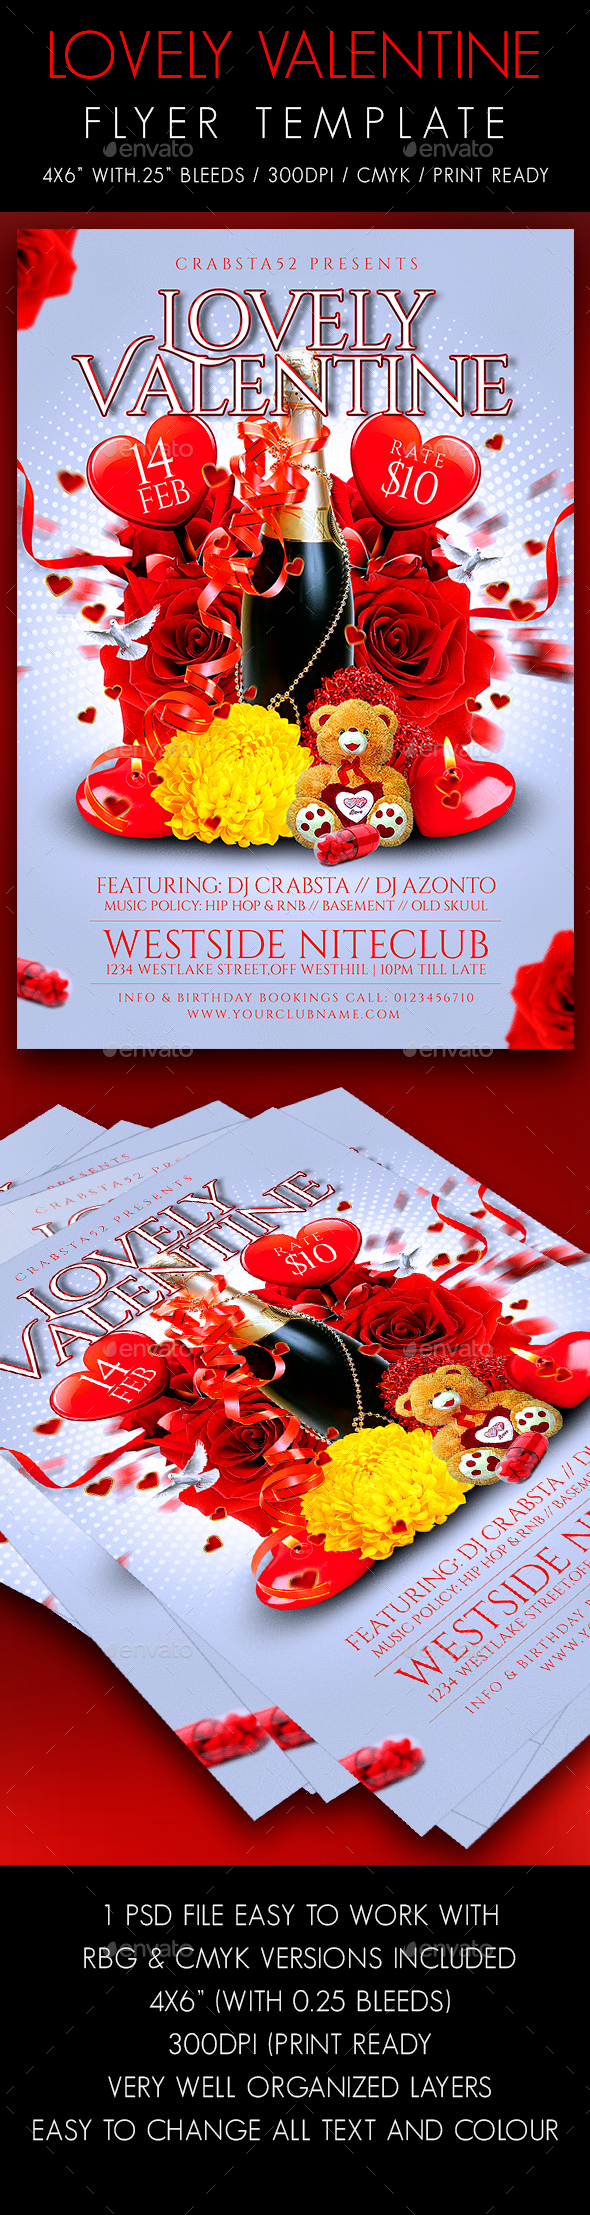 Lovely Valentine Flyer Template